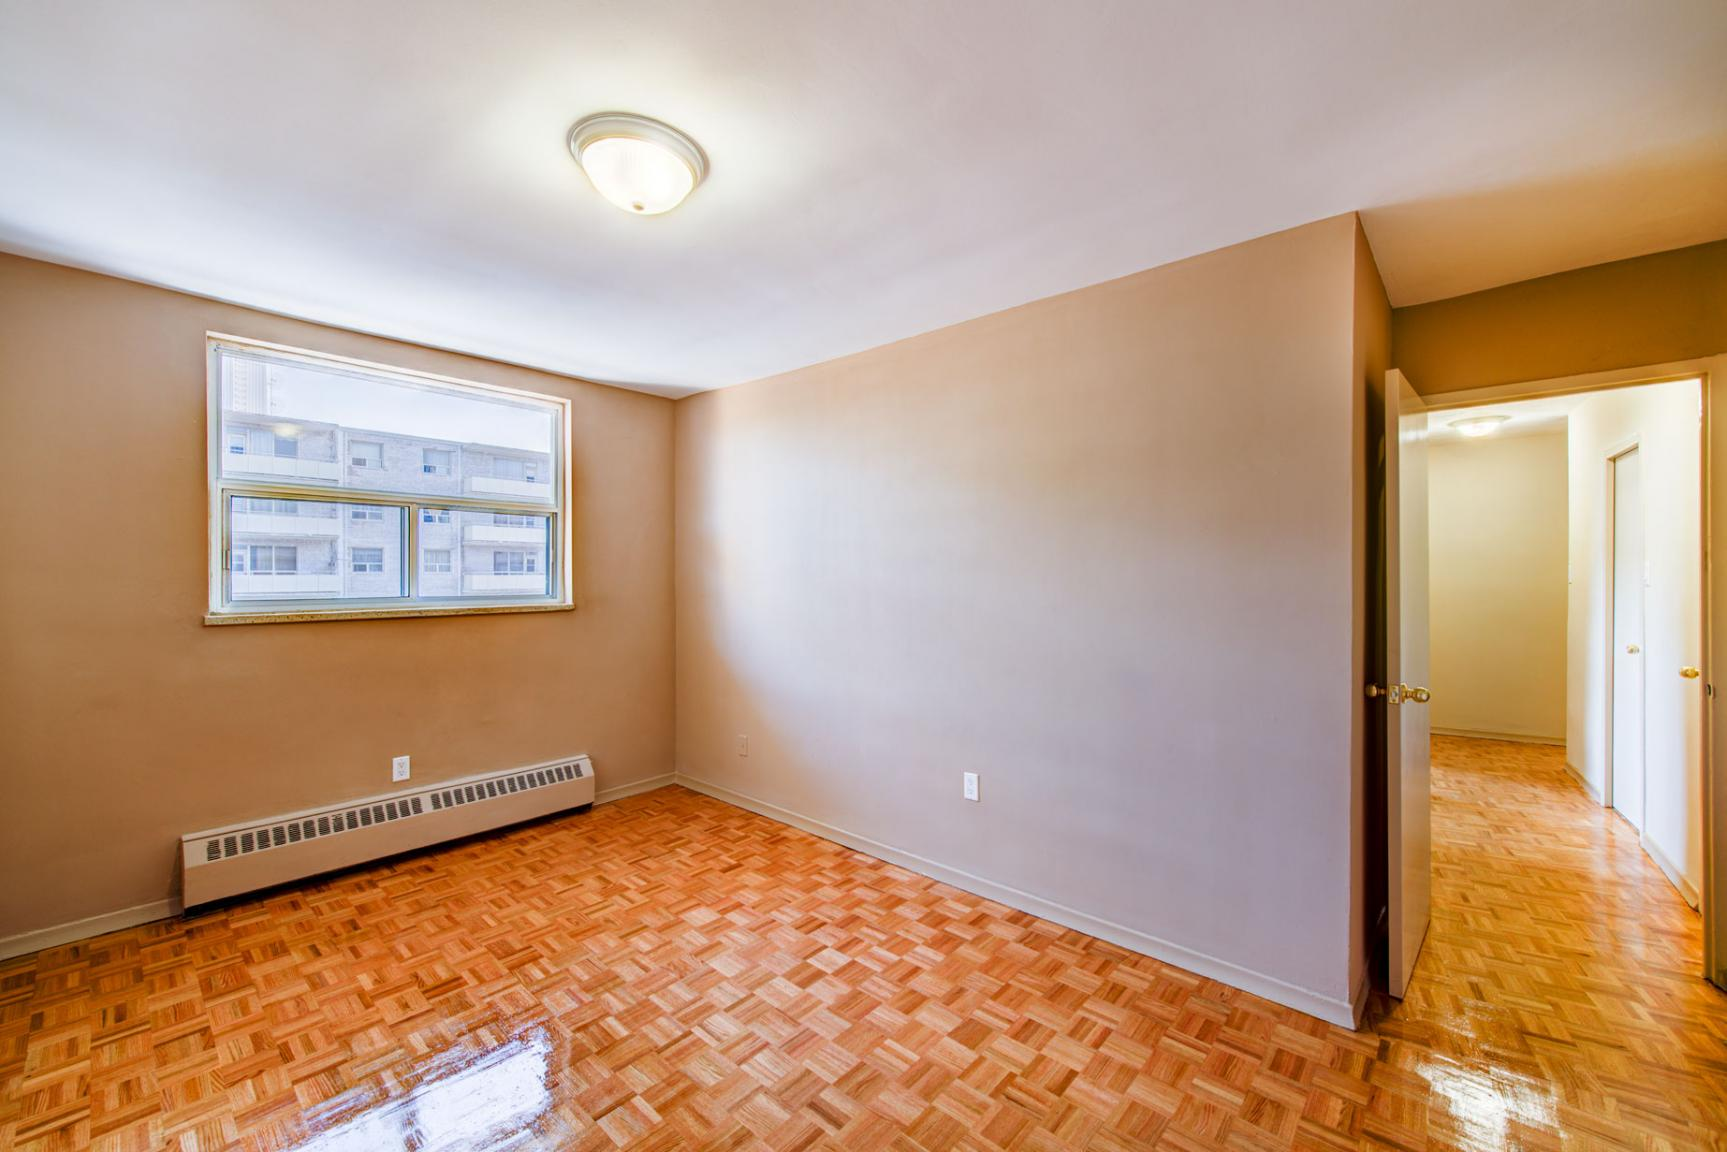 1 bedroom Apartments for rent in Mississauga at Bristol Arms Apartments - Photo 14 - RentersPages – L138729